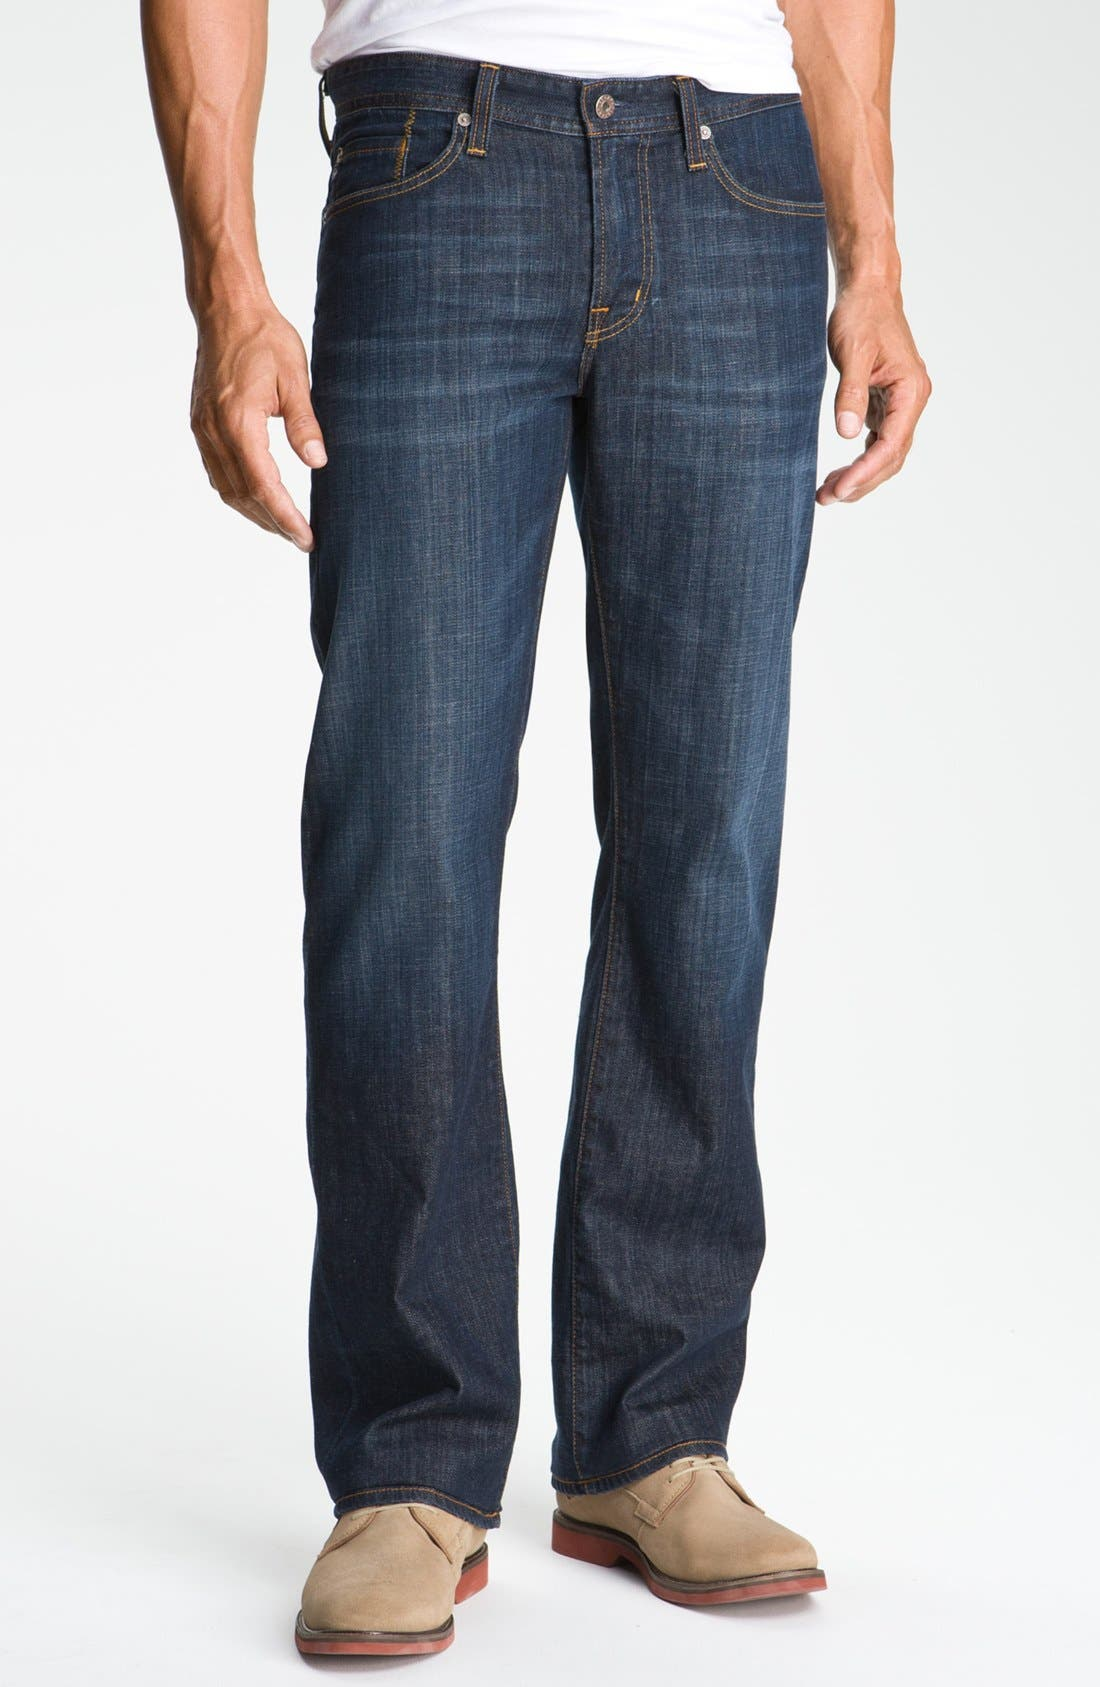 clothme preferred most every comfortable net mens men casual outfit are shorts that on popularity the jeans it reason as for yet stylish by s outfits absolute line of comforter age